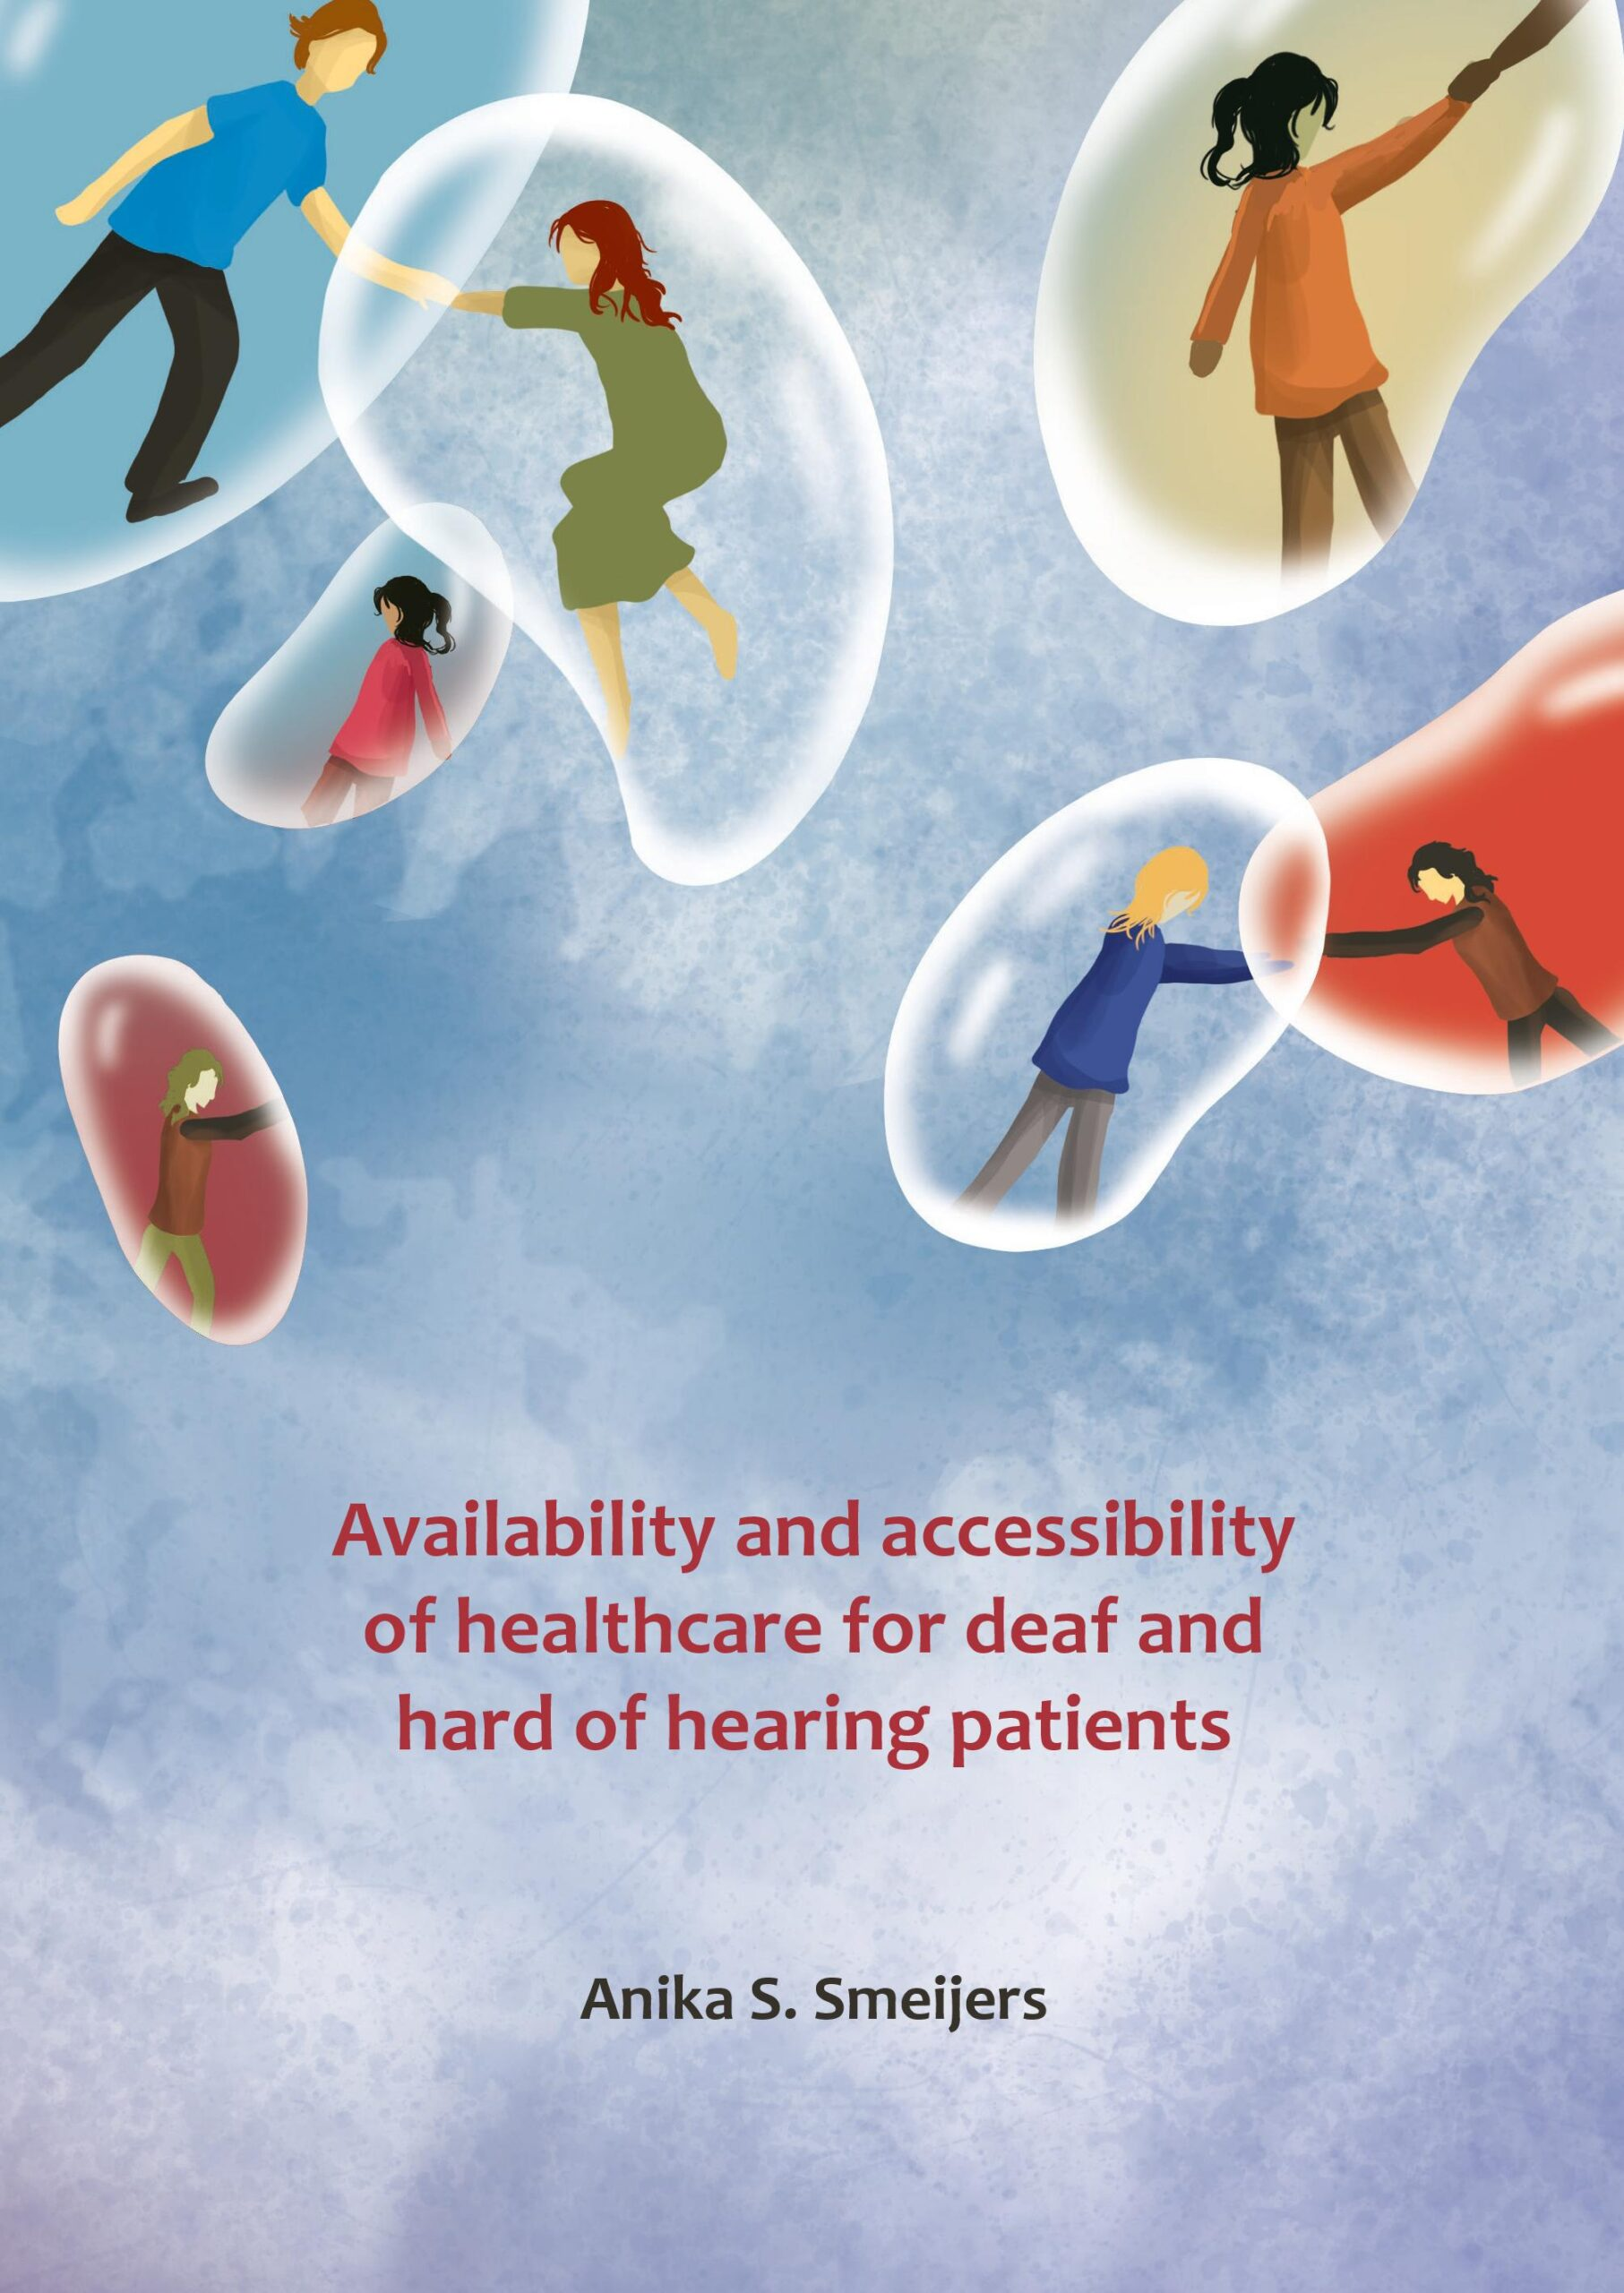 Availability and Accessibility of Healthcare for Deaf and HoH Patients